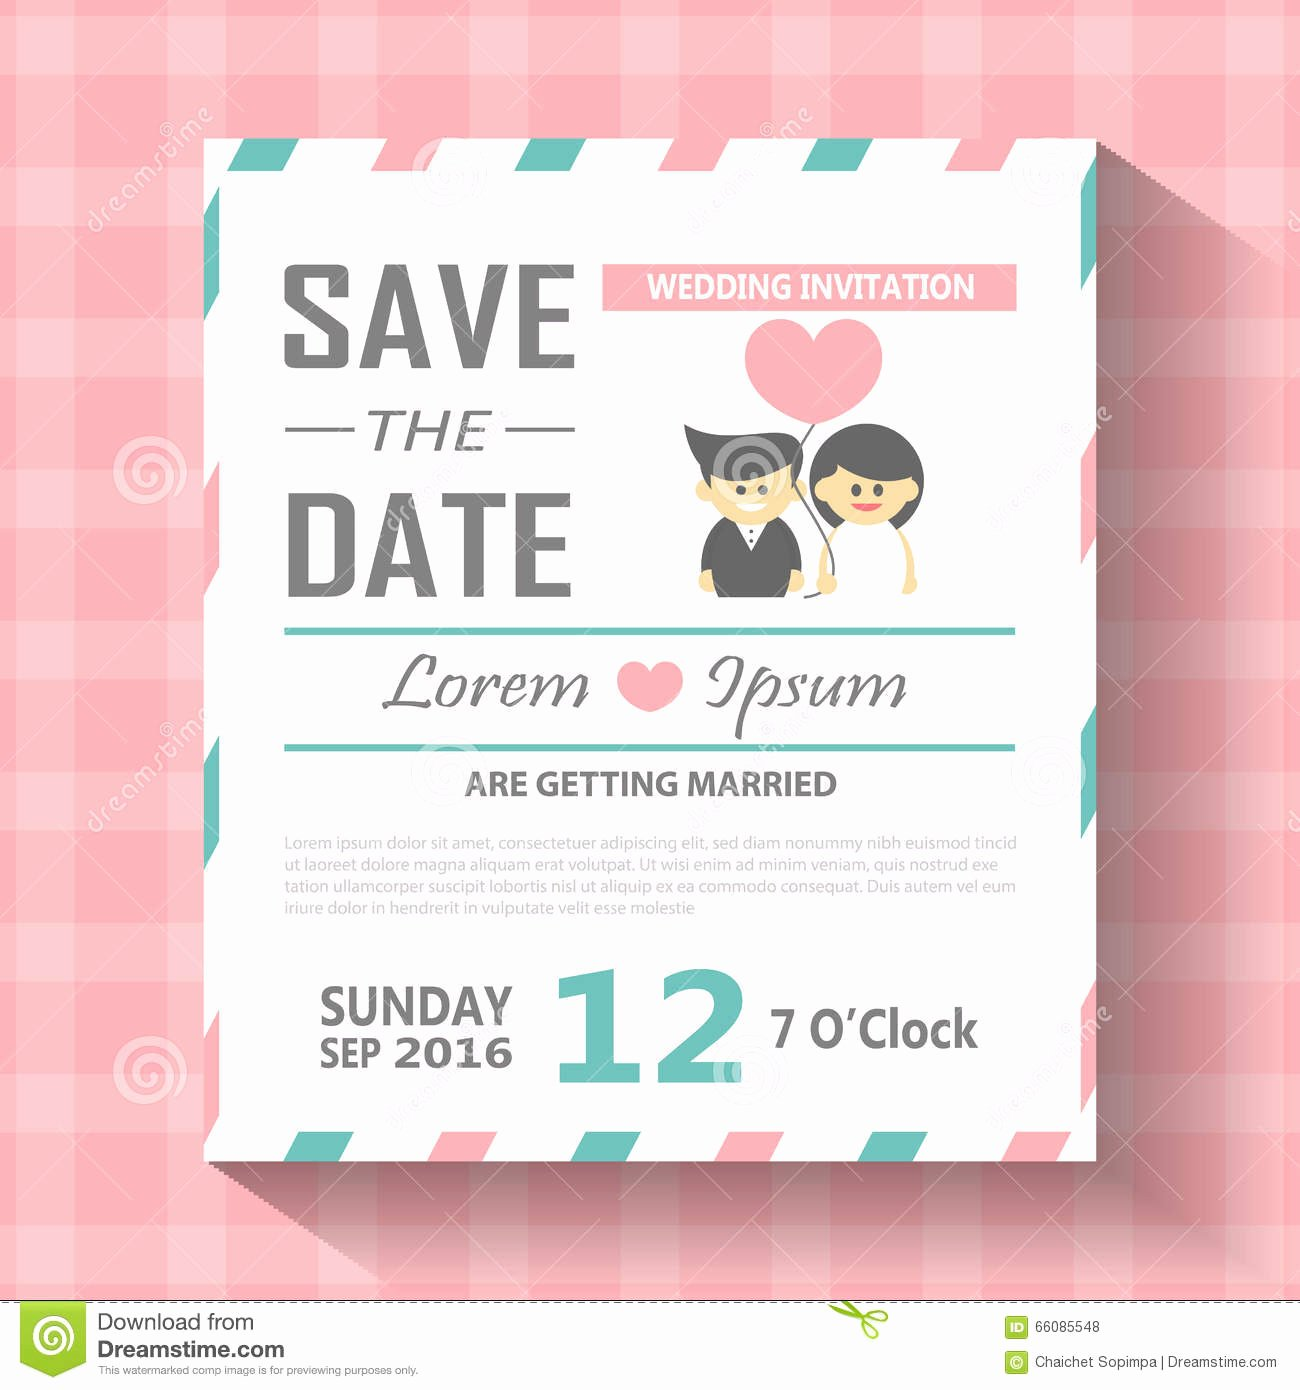 stock illustration wedding invitation card template vector illustration wedding invitation card editable background chevron font type save image